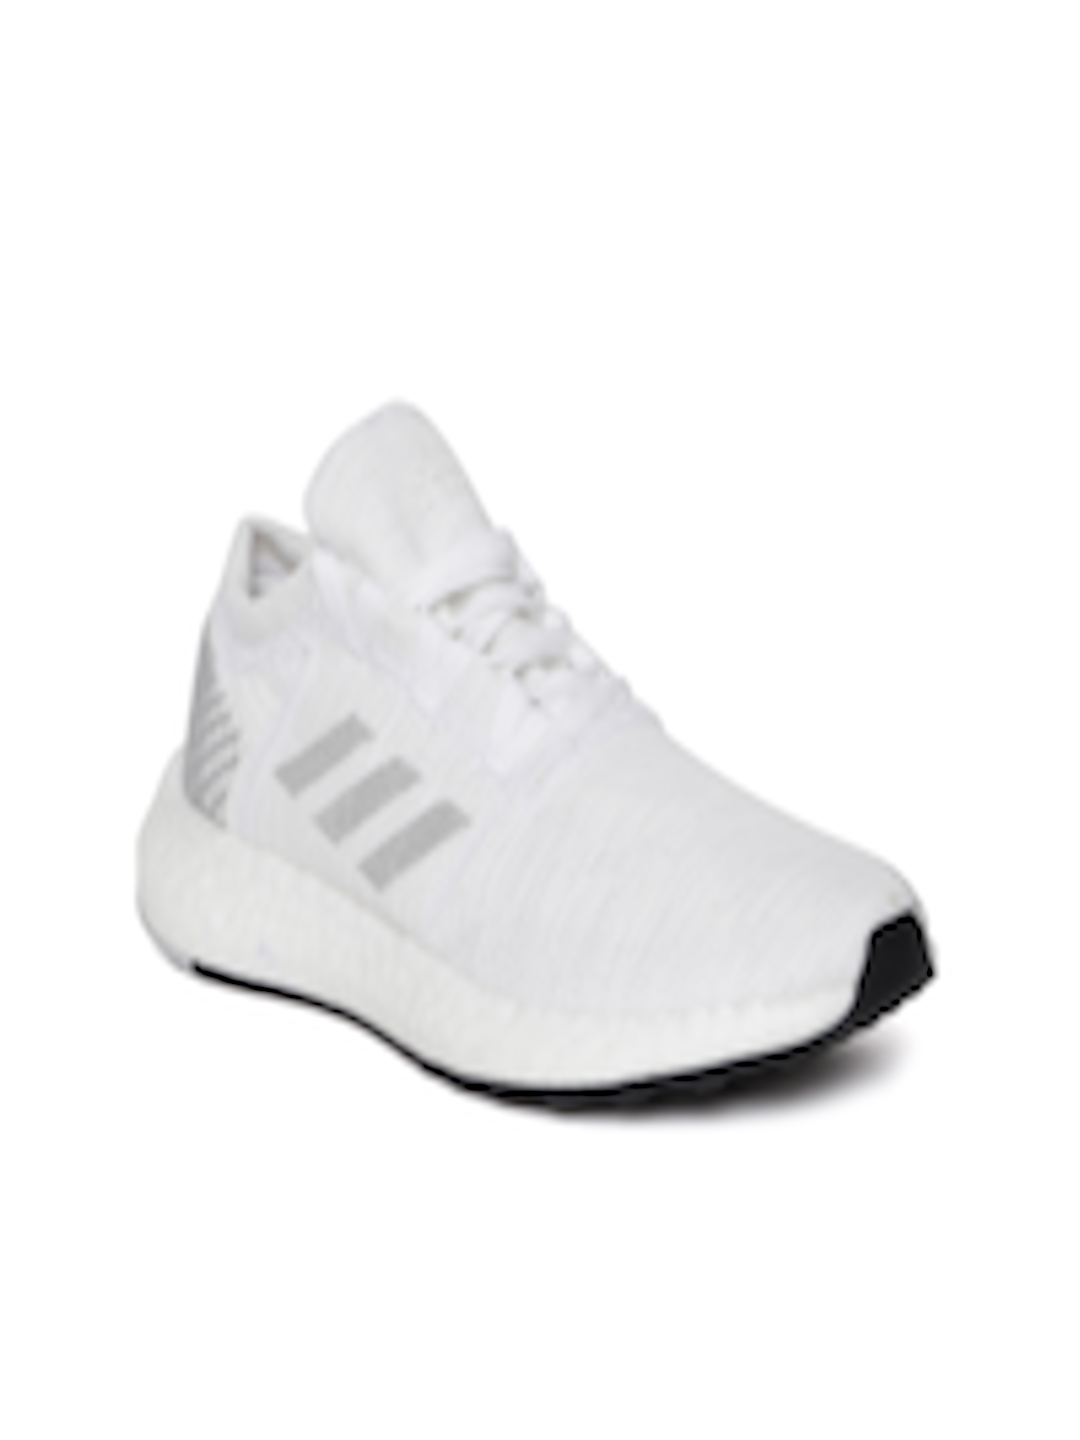 45d8a63304220 Buy ADIDAS Women White   Grey Pureboost Go Woven Design Running Shoes - Sports  Shoes for Women 6841904